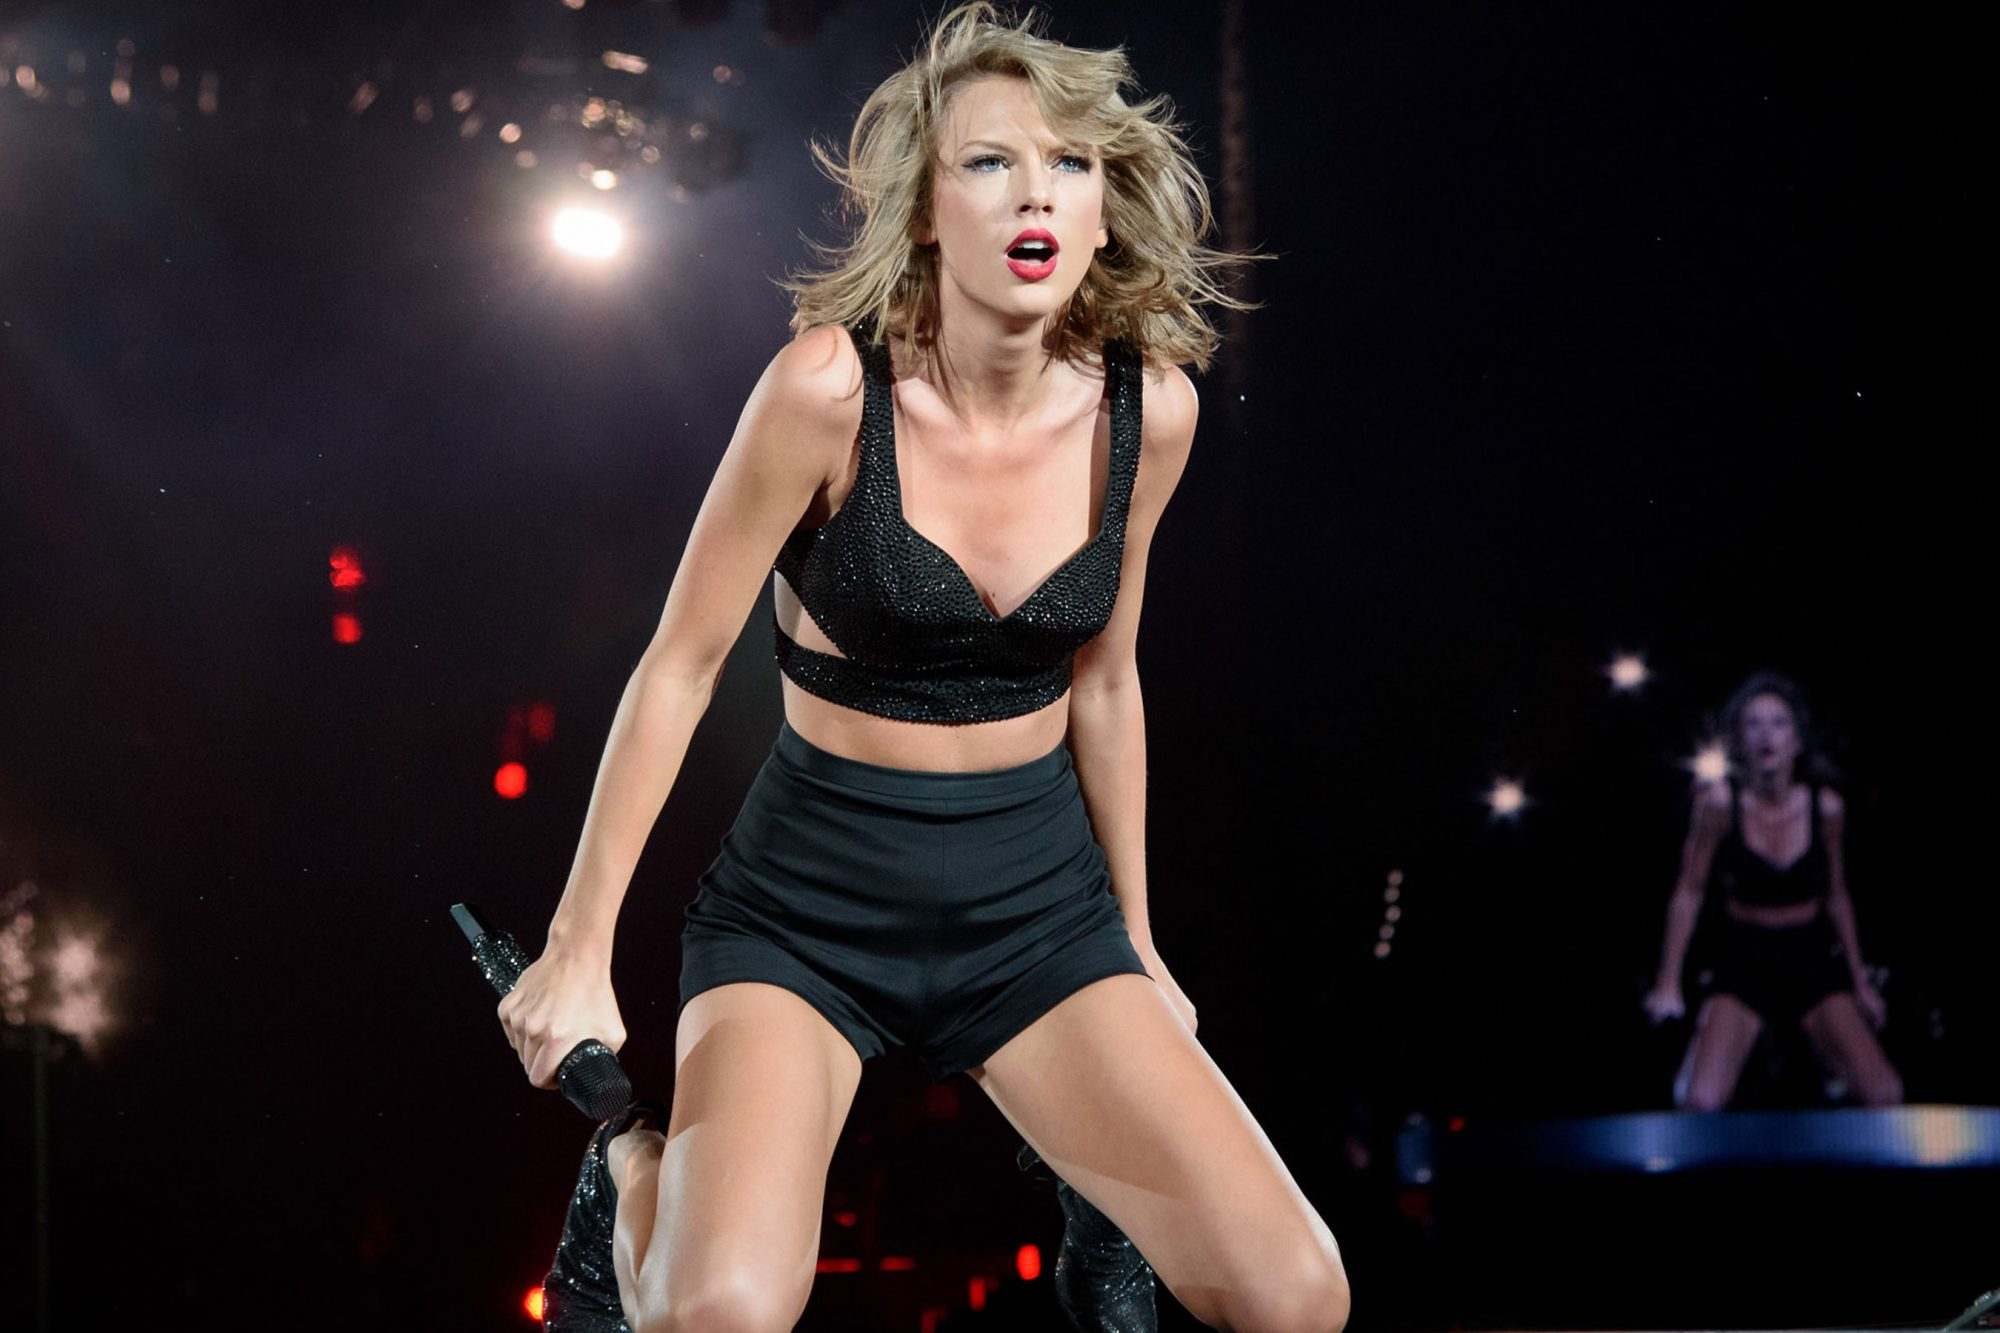 Taylor Swift The 1989 World Tour Live In Toronto - Night 2